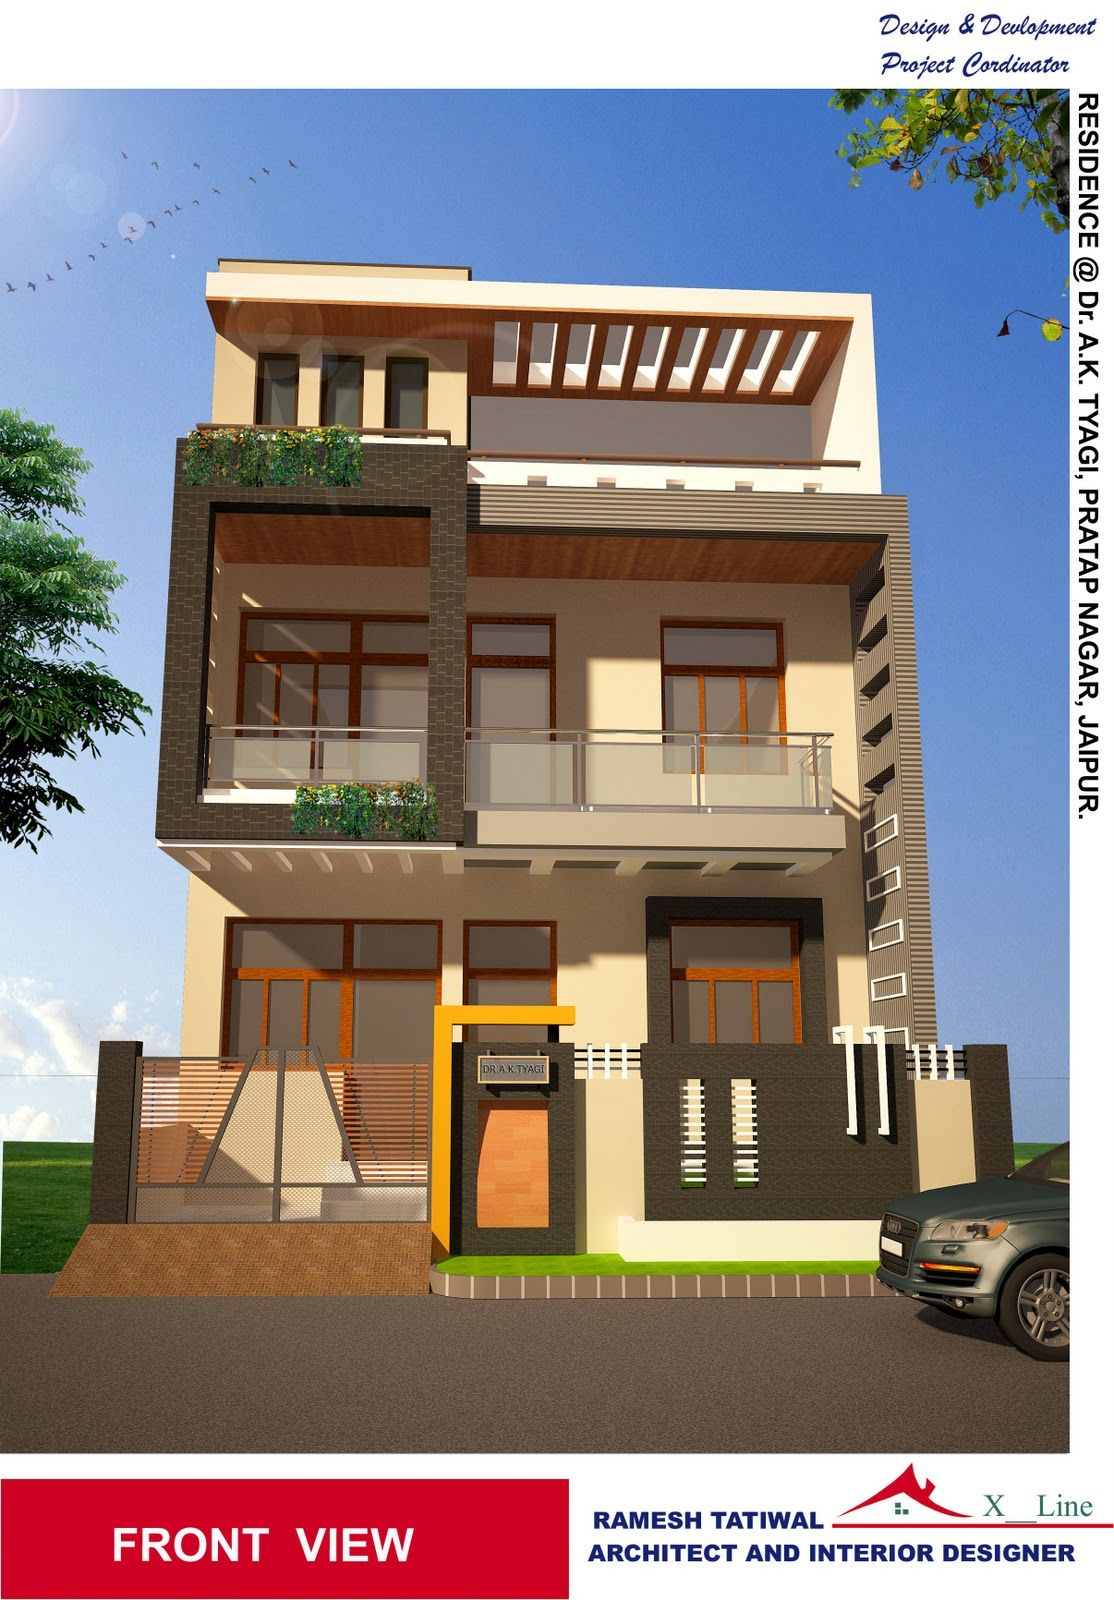 Housedesigns modern indian home architecture design from for House elevation photos architecture